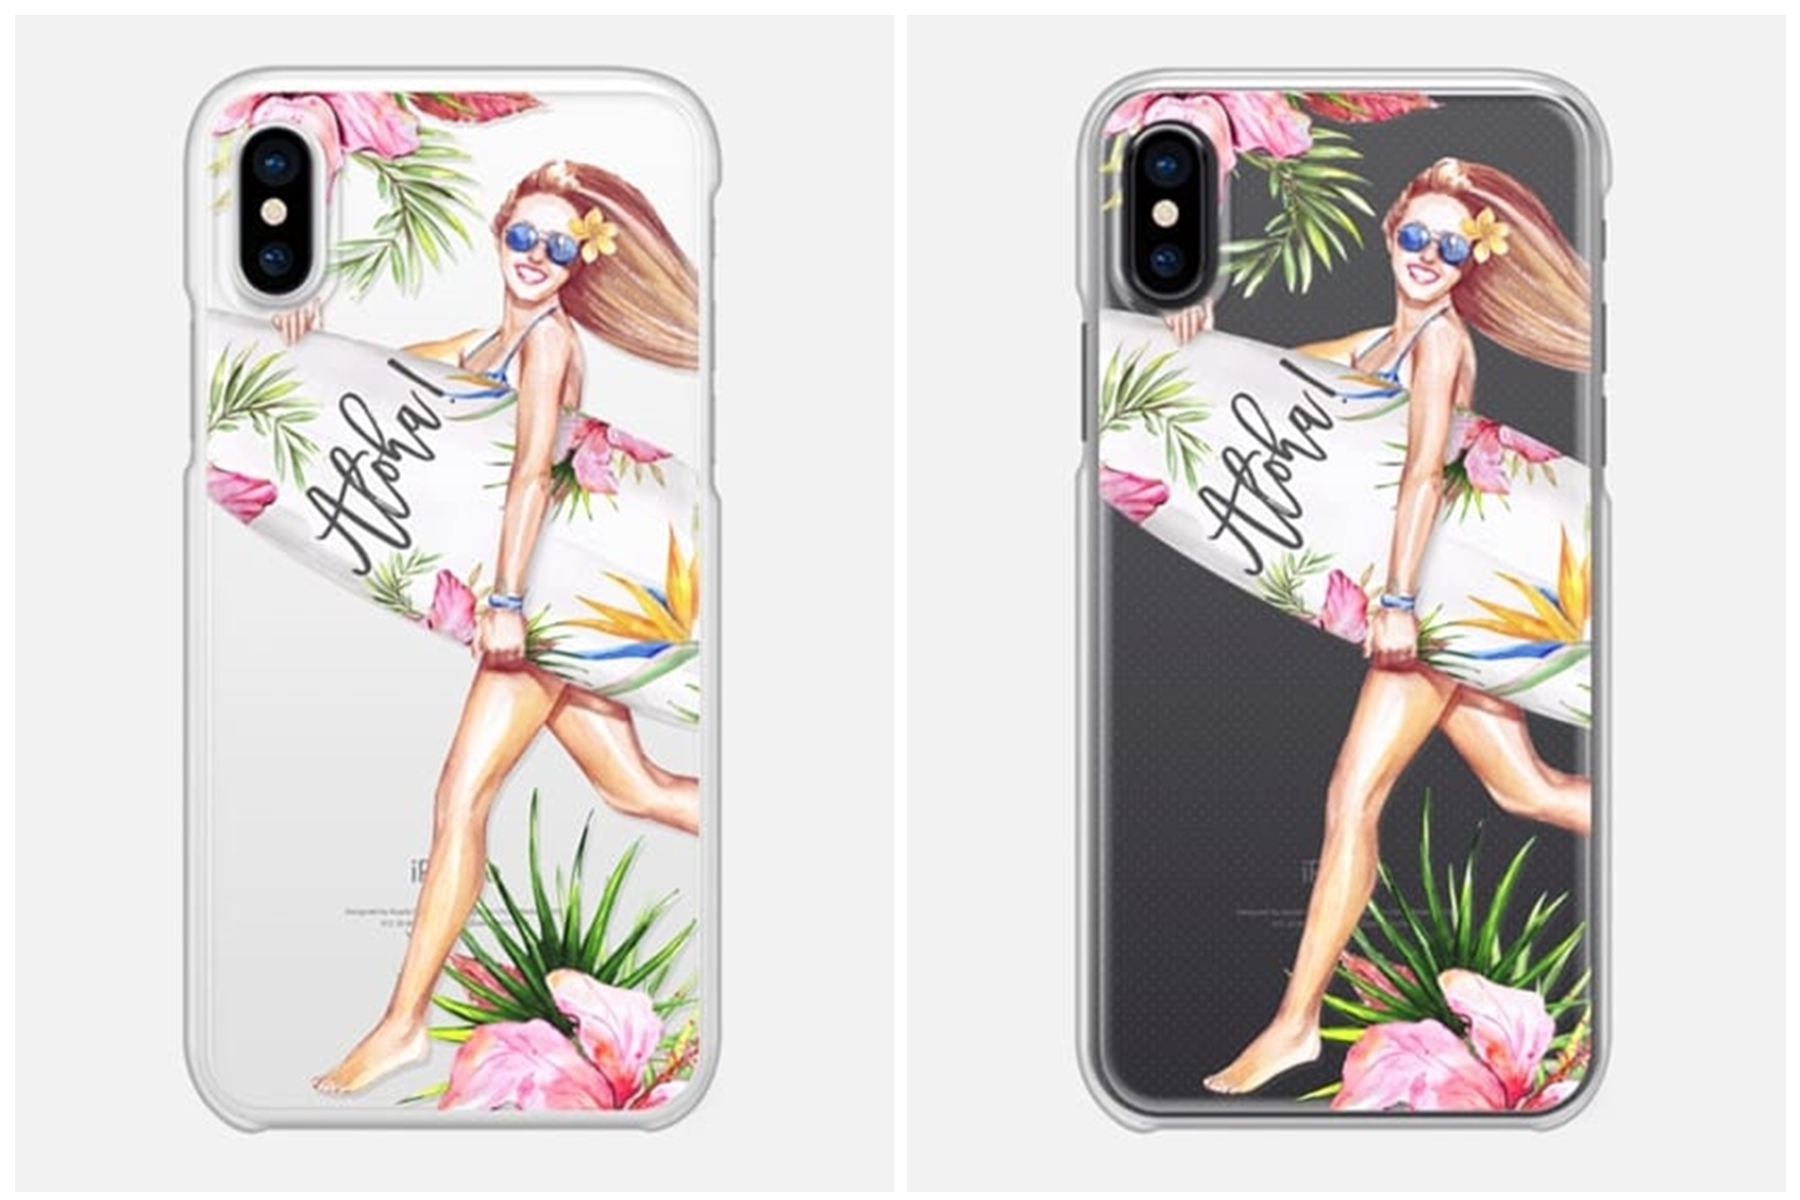 【Casetify】 ★ iPhone ケース ★ サーフィン